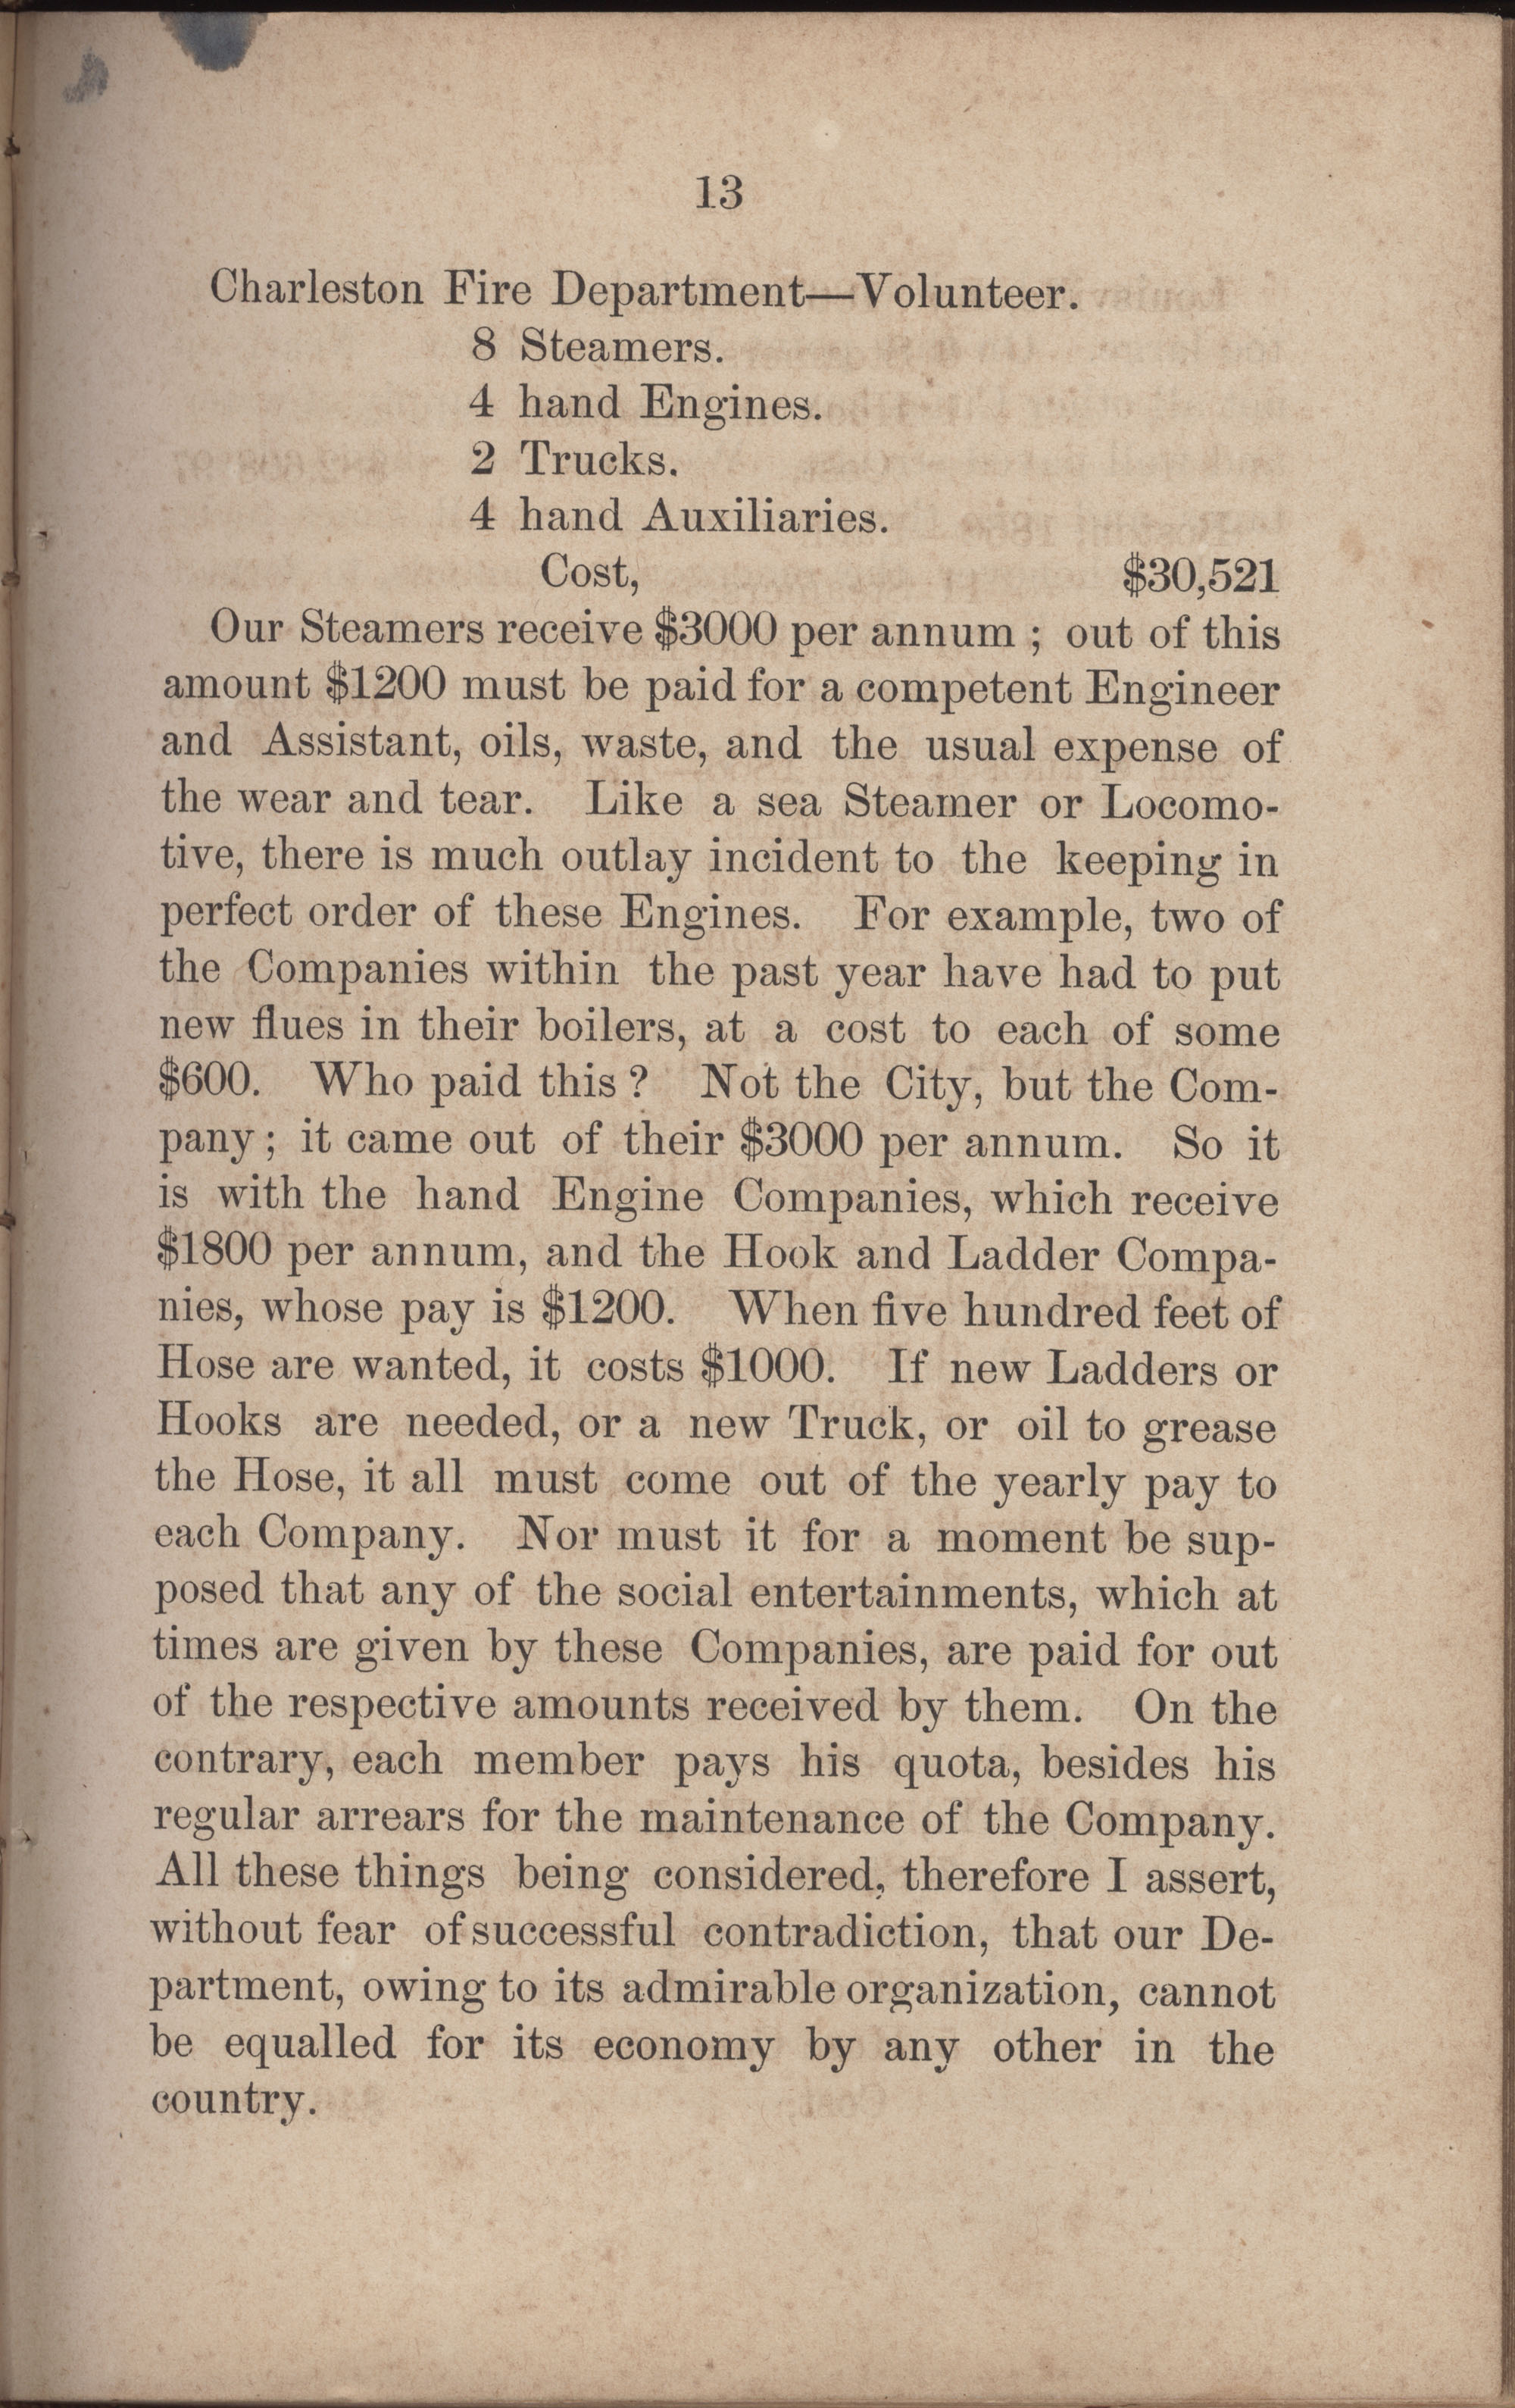 Annual Report of the Chief of the Fire Department of the City of Charleston, page 240